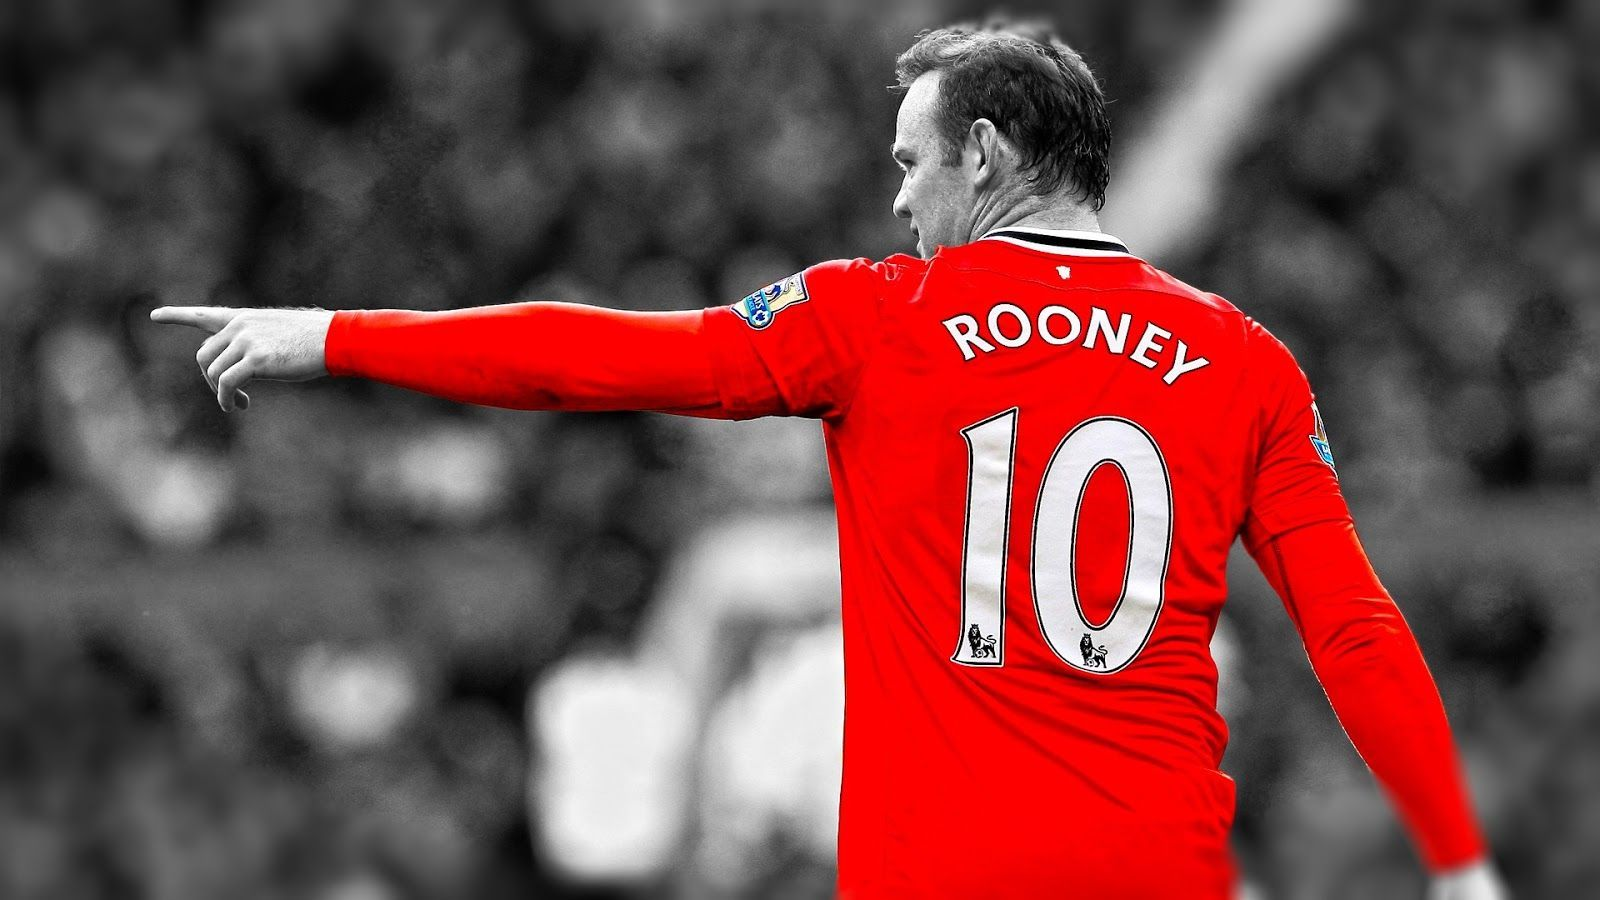 Wayne Rooney Wallpaper